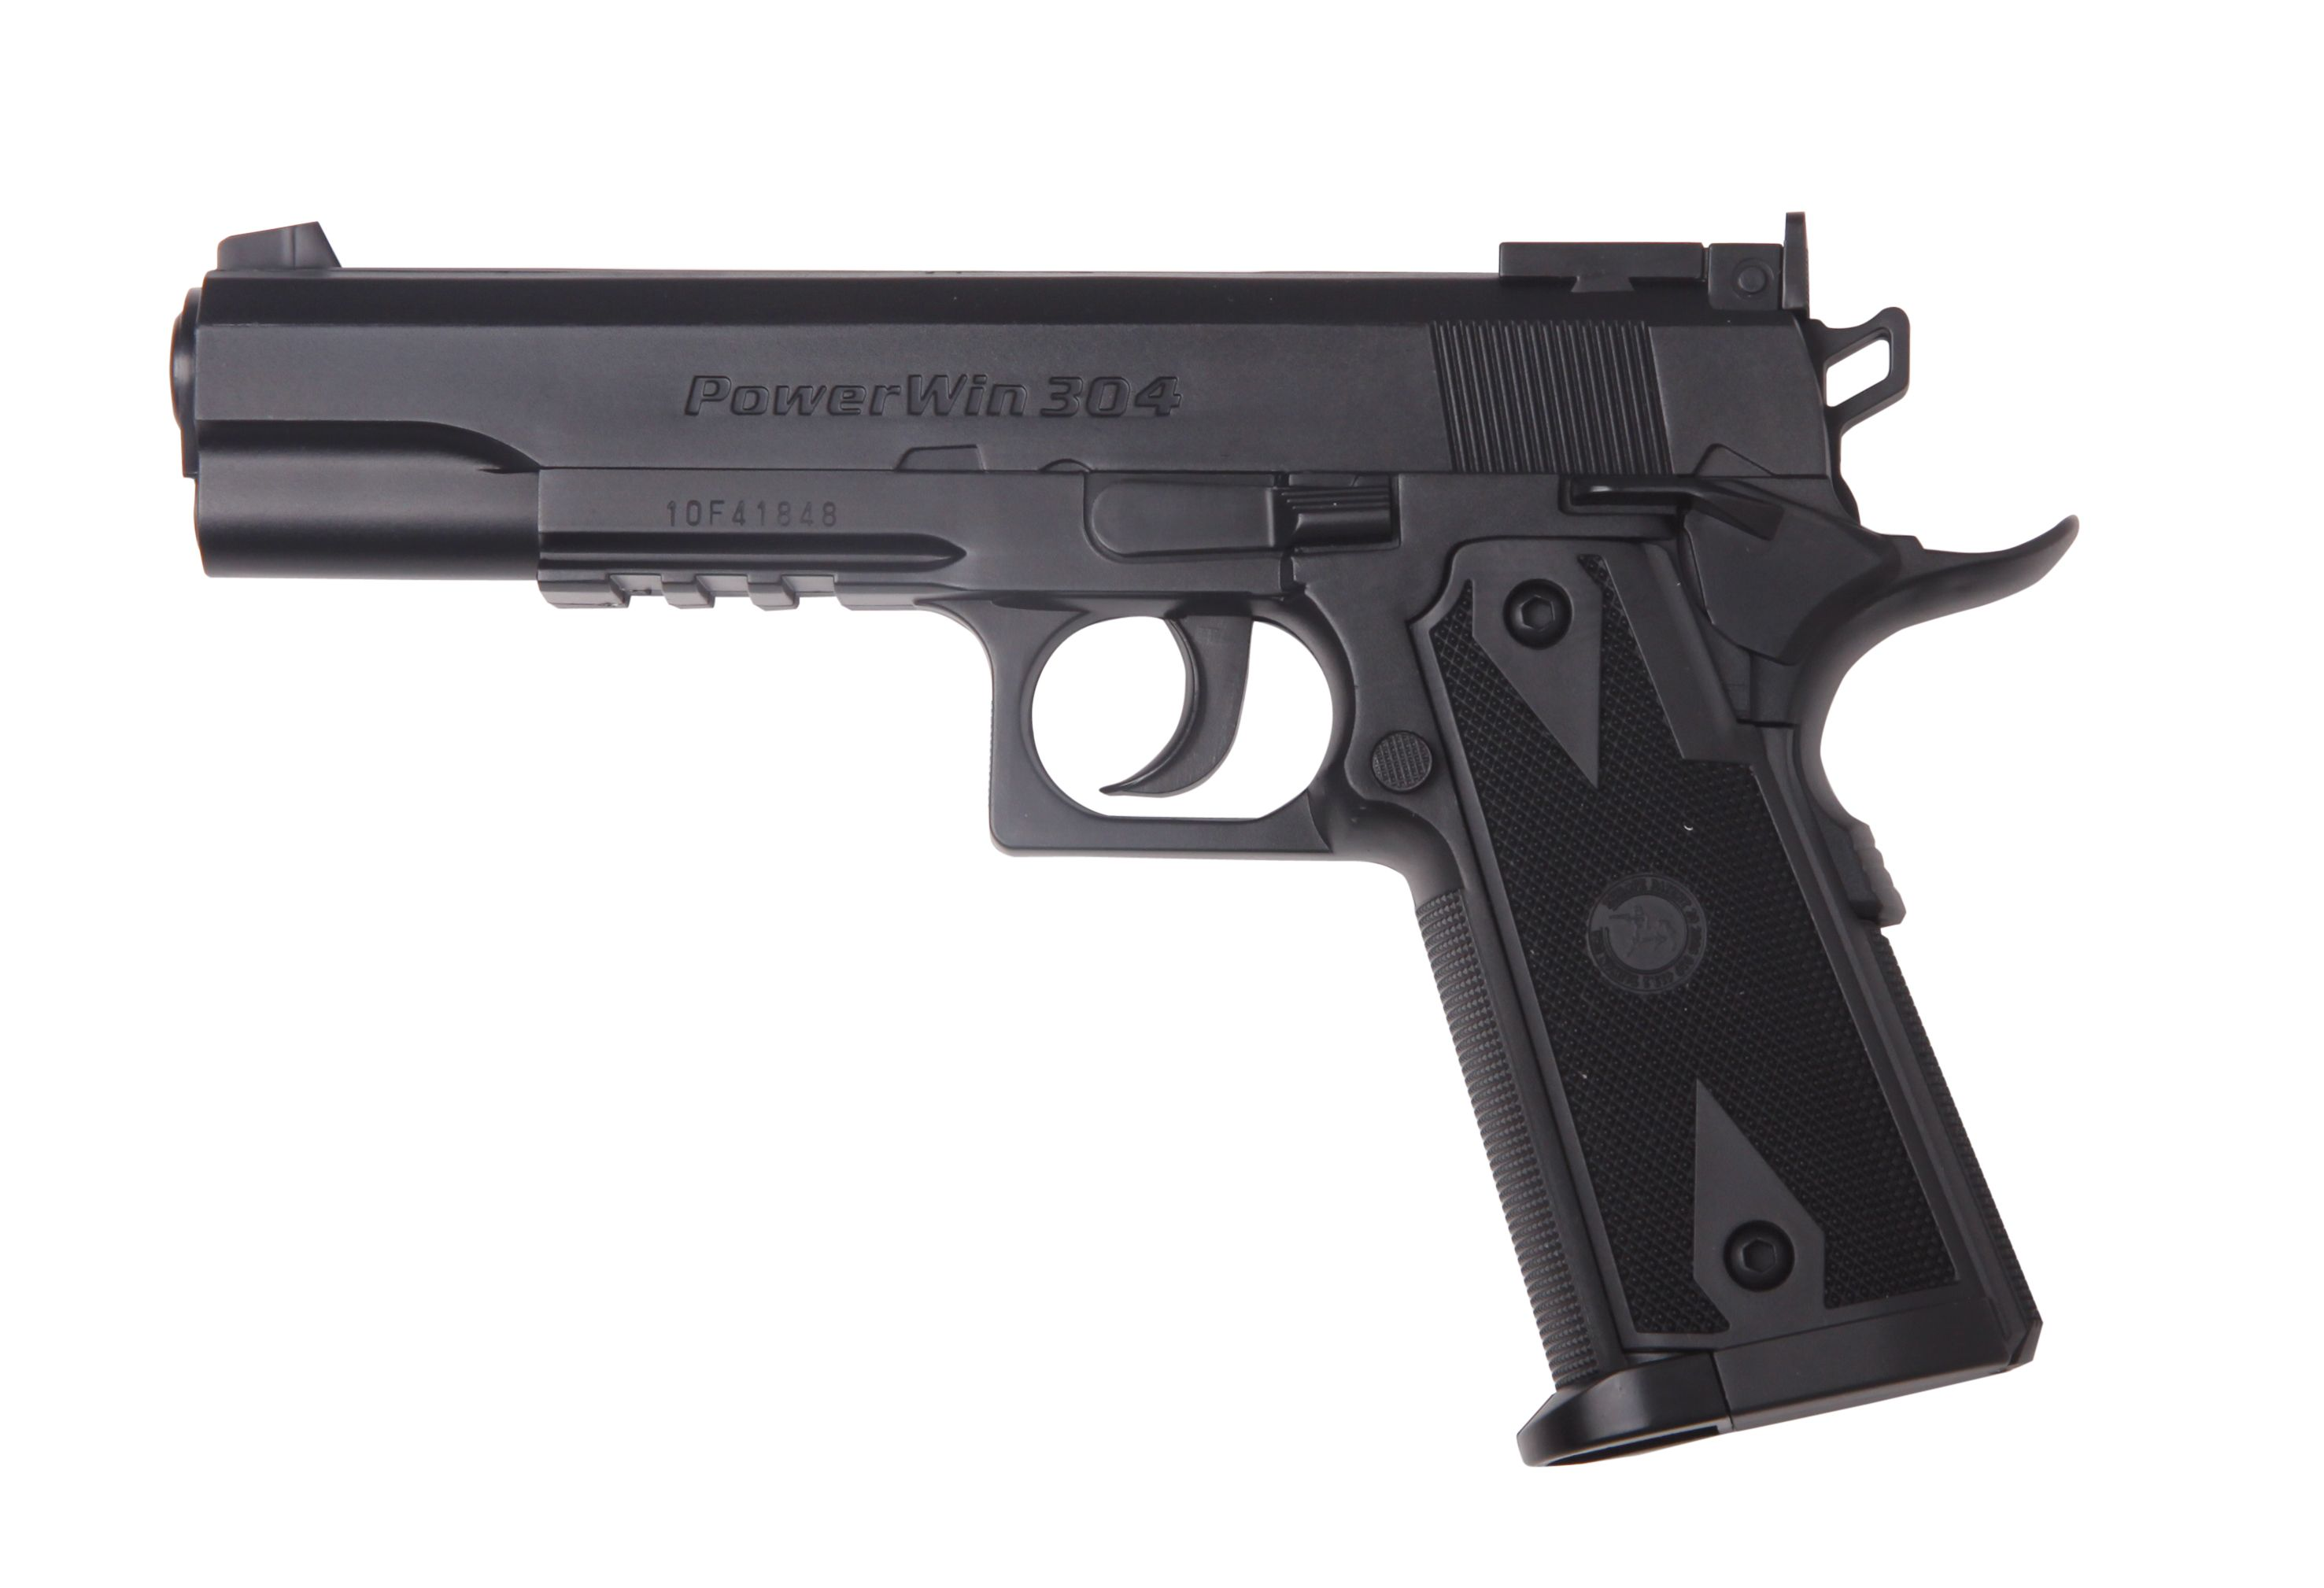 PISTOLA 1911 CO2 NEGRA cal.: 4.5 mm.